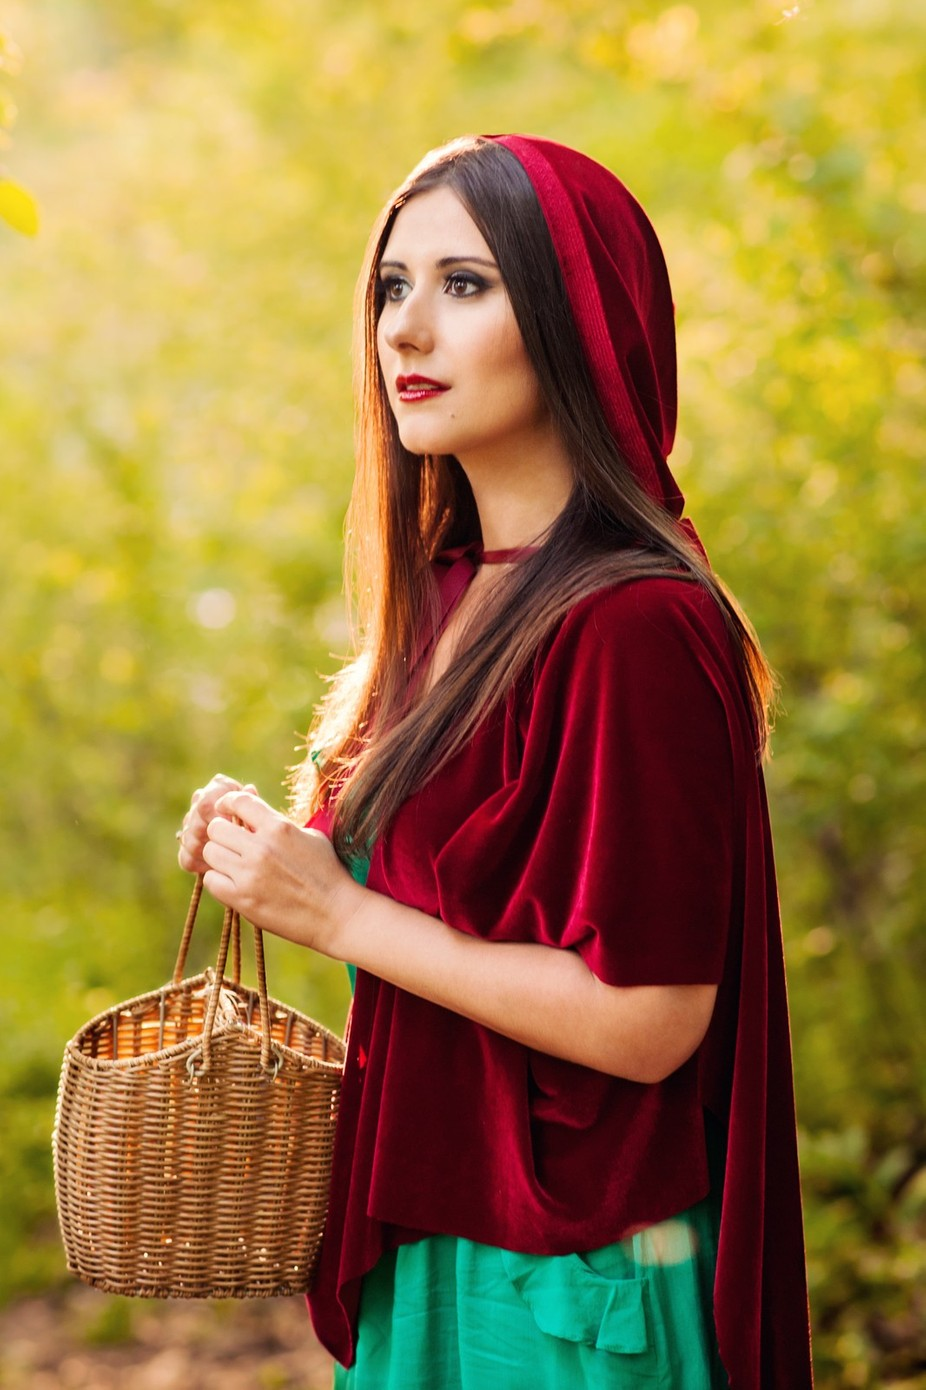 Red Riding Hood 4 by Laska - Feeling Hope Photo Contest